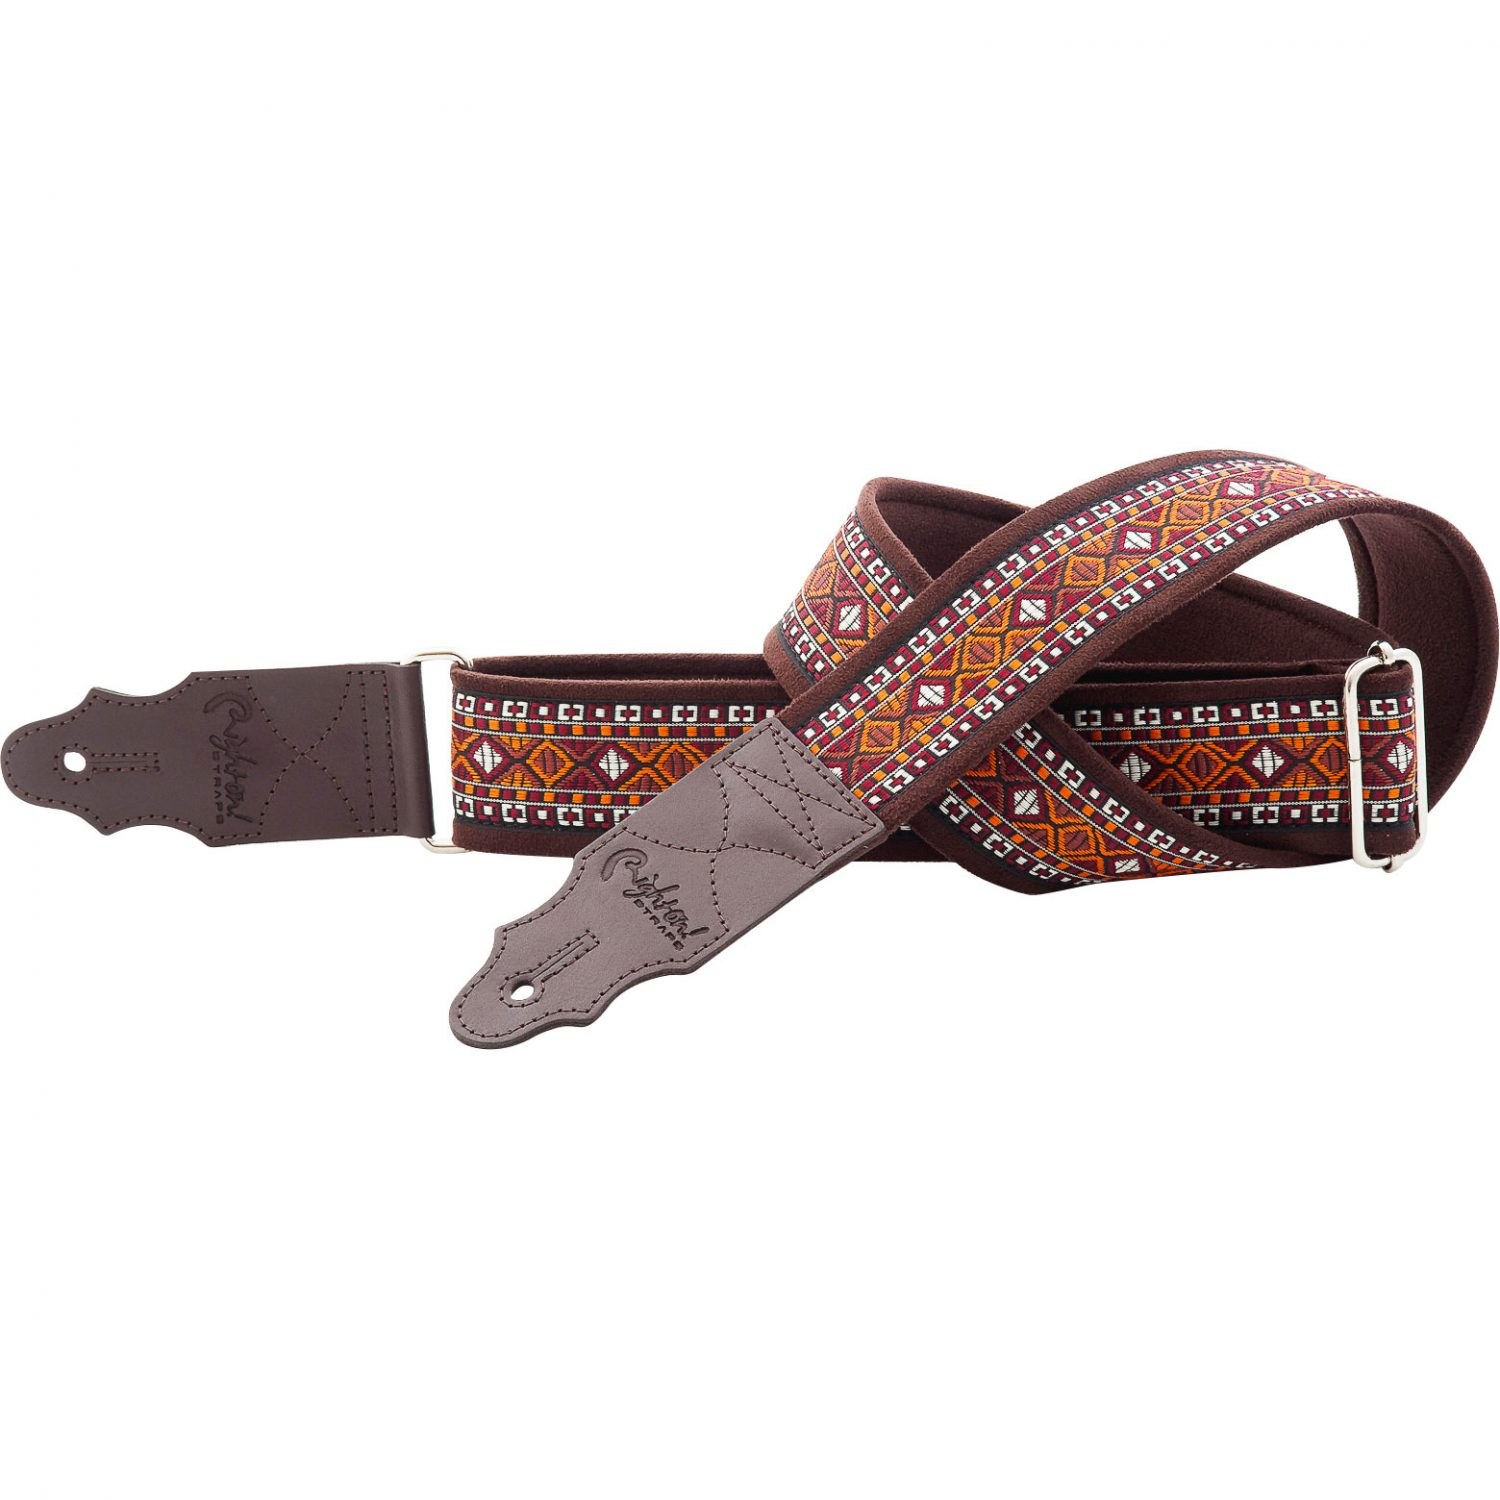 STANDARD-PLUS-ALTAMONT-BROWN-RIGHTONSTRAPS